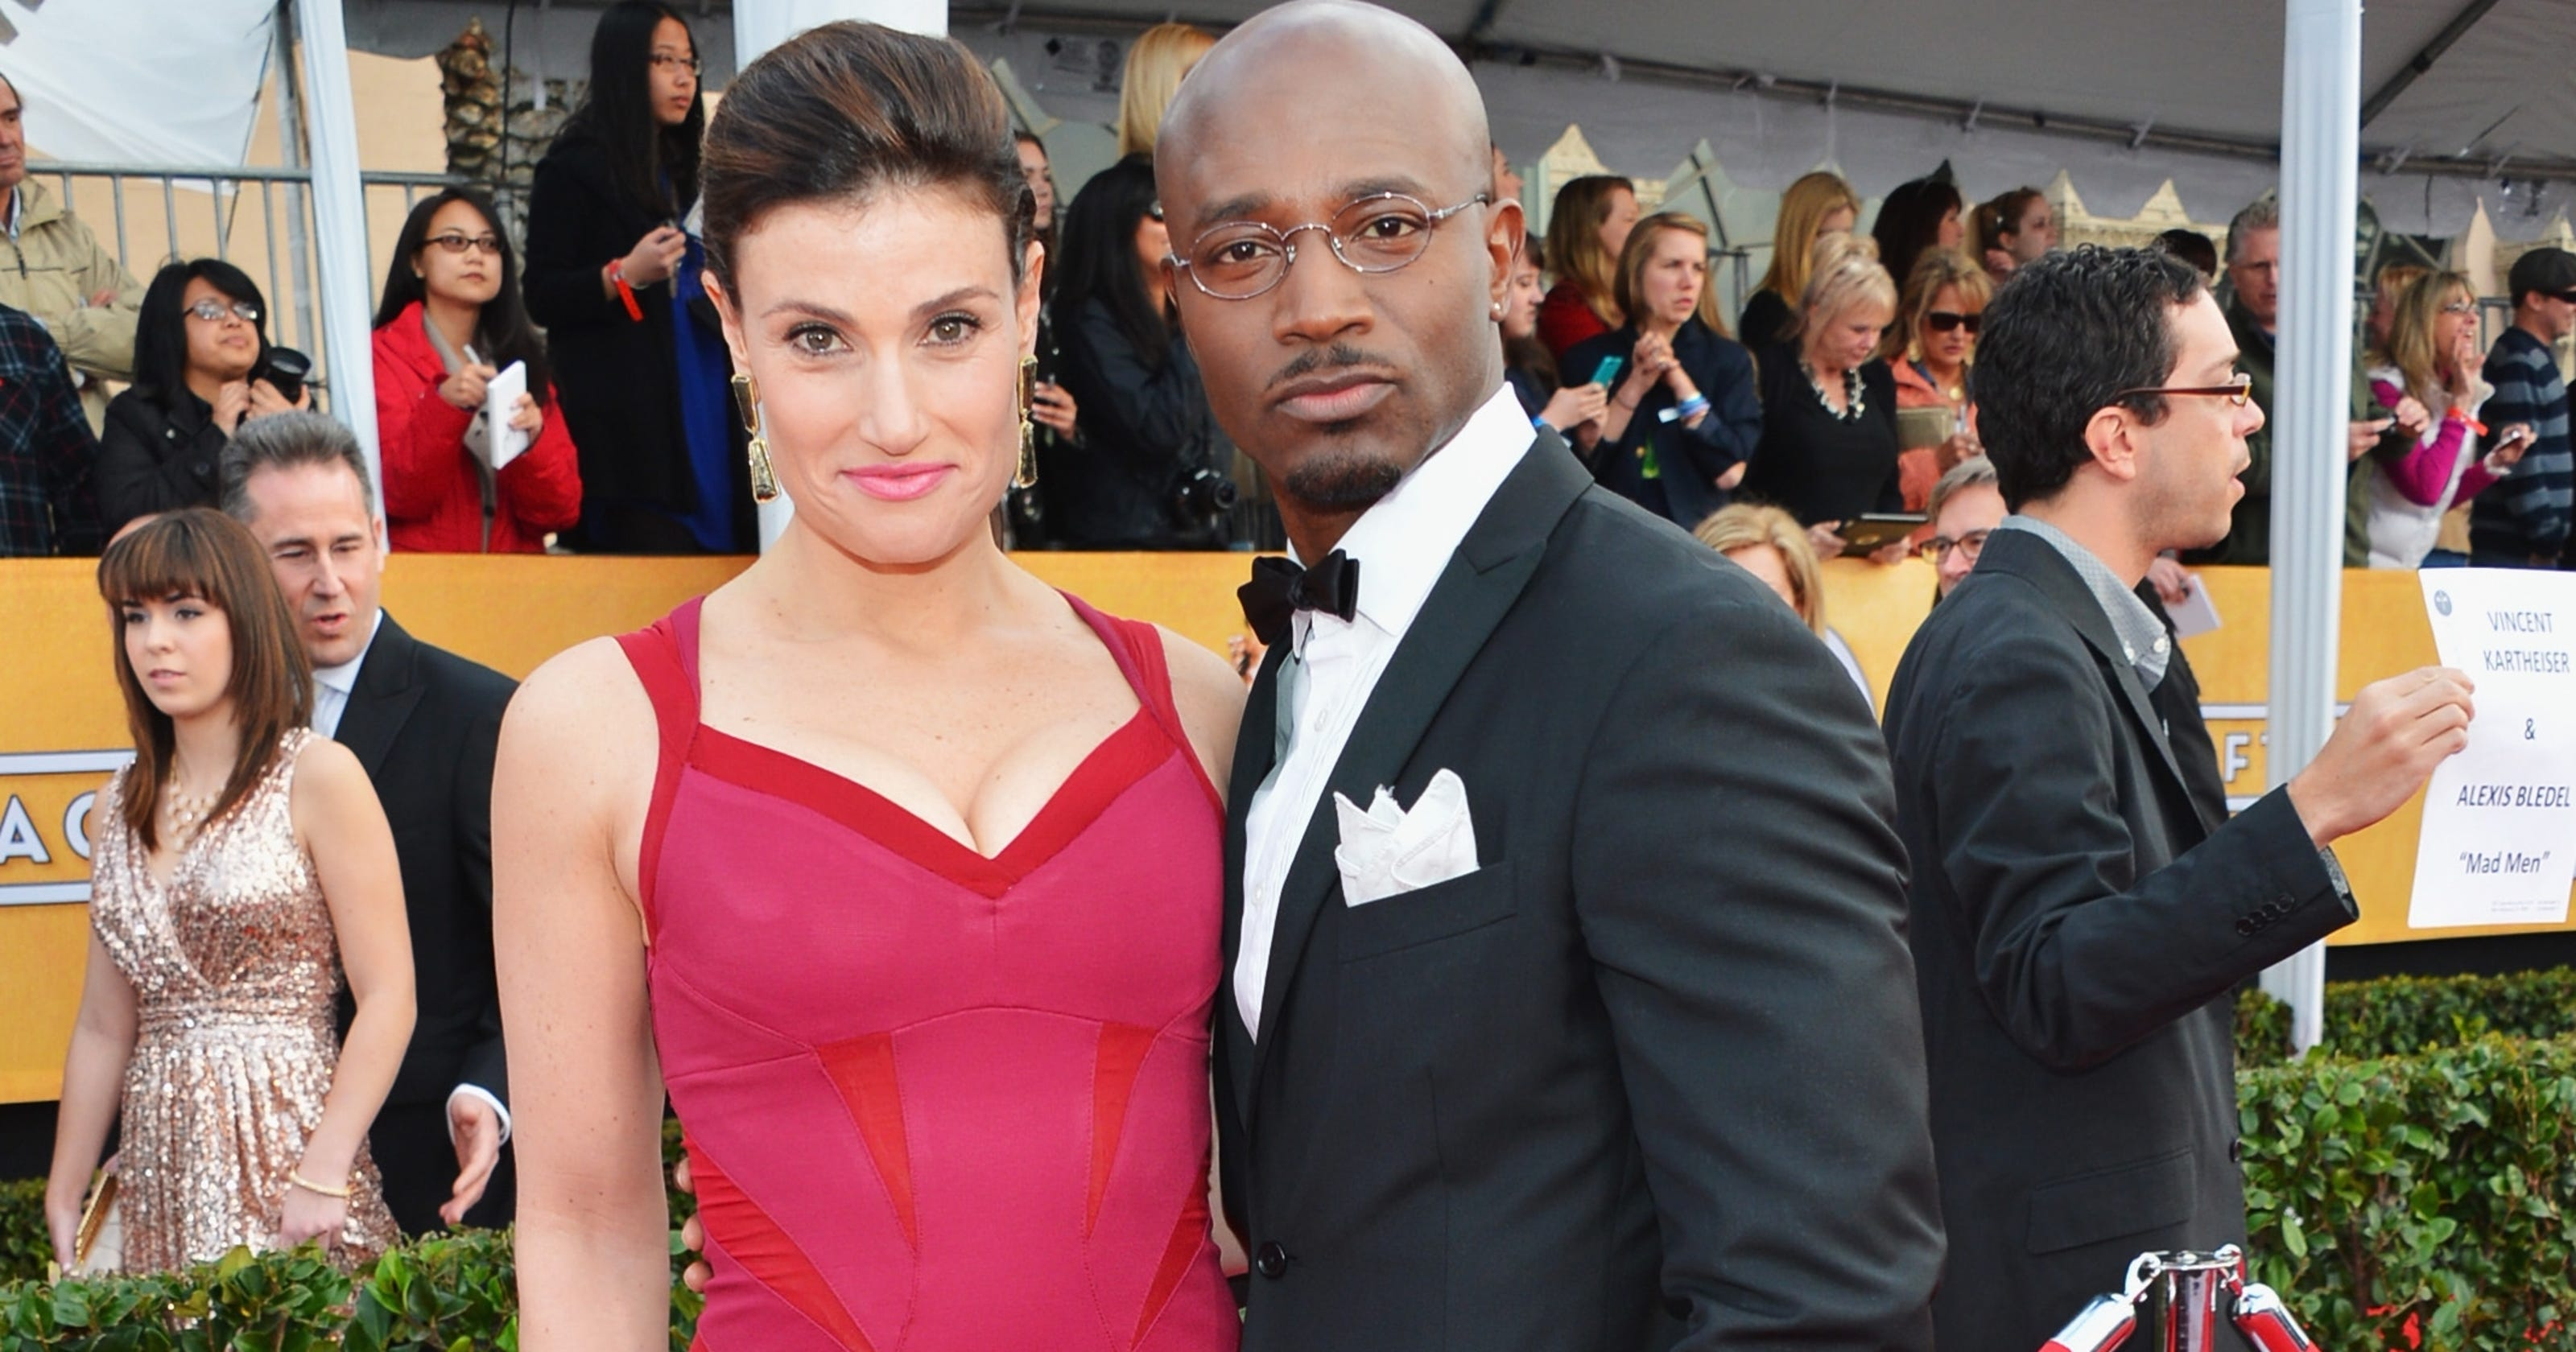 7bf1c05f15 Taye Diggs catches burglary suspect after SAGs